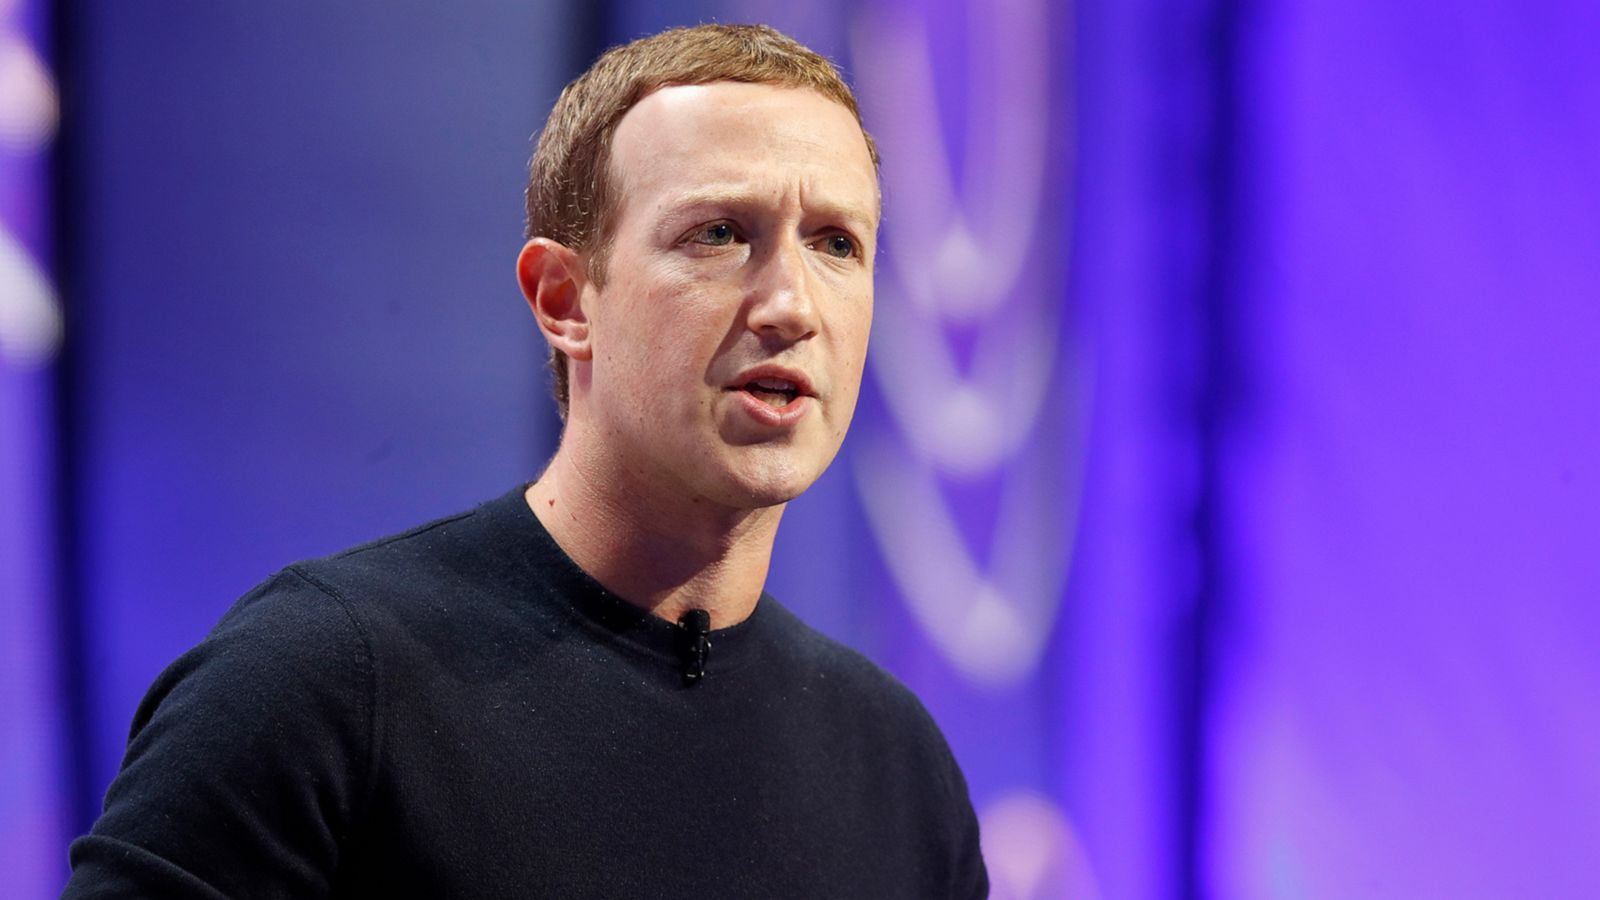 Is government about to regulate Facebook?| FiveThirtyEight Politics Podcast